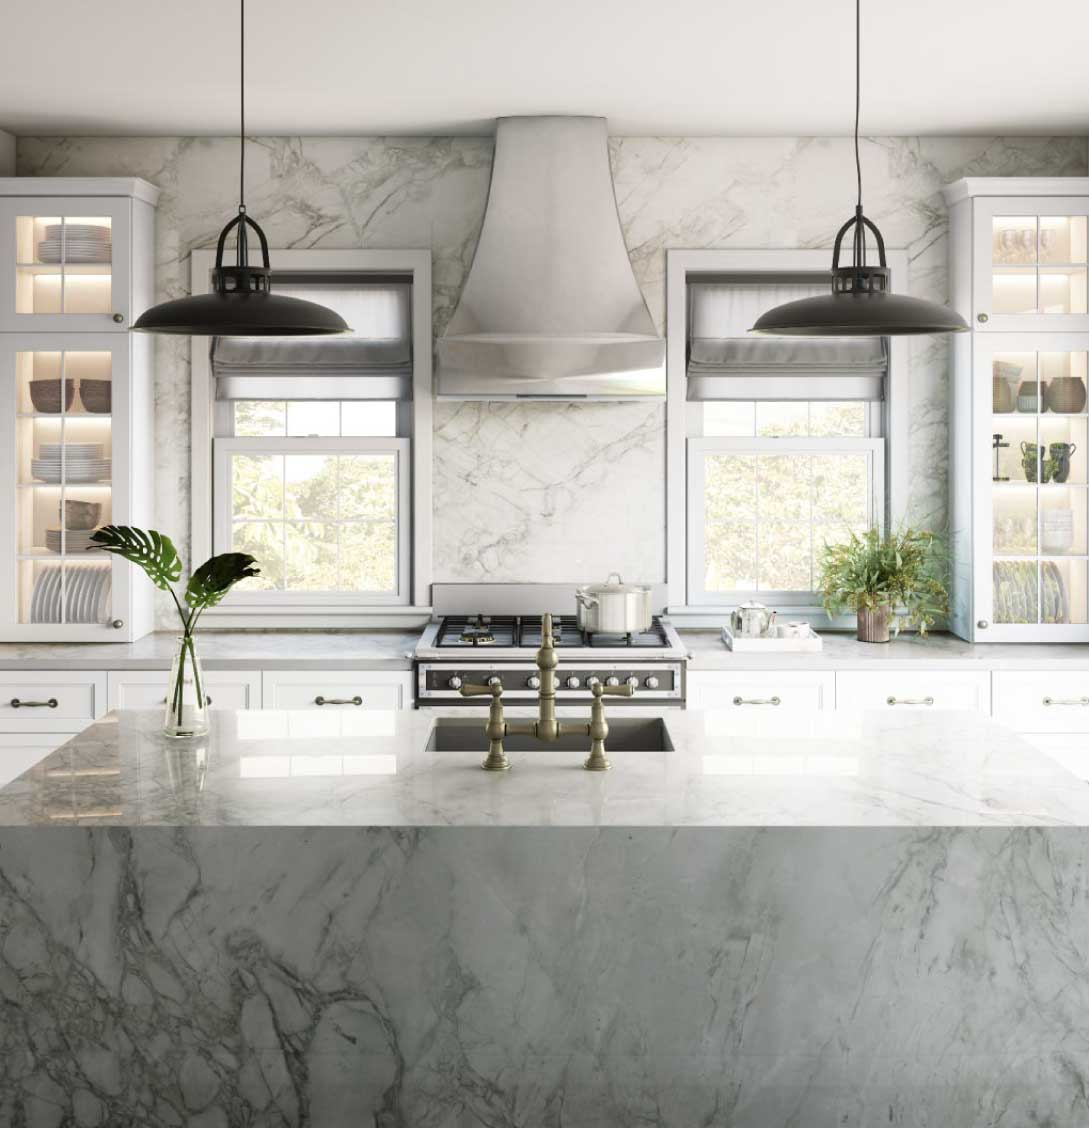 Dekton Bergen ultracompact stone countertop kitchen